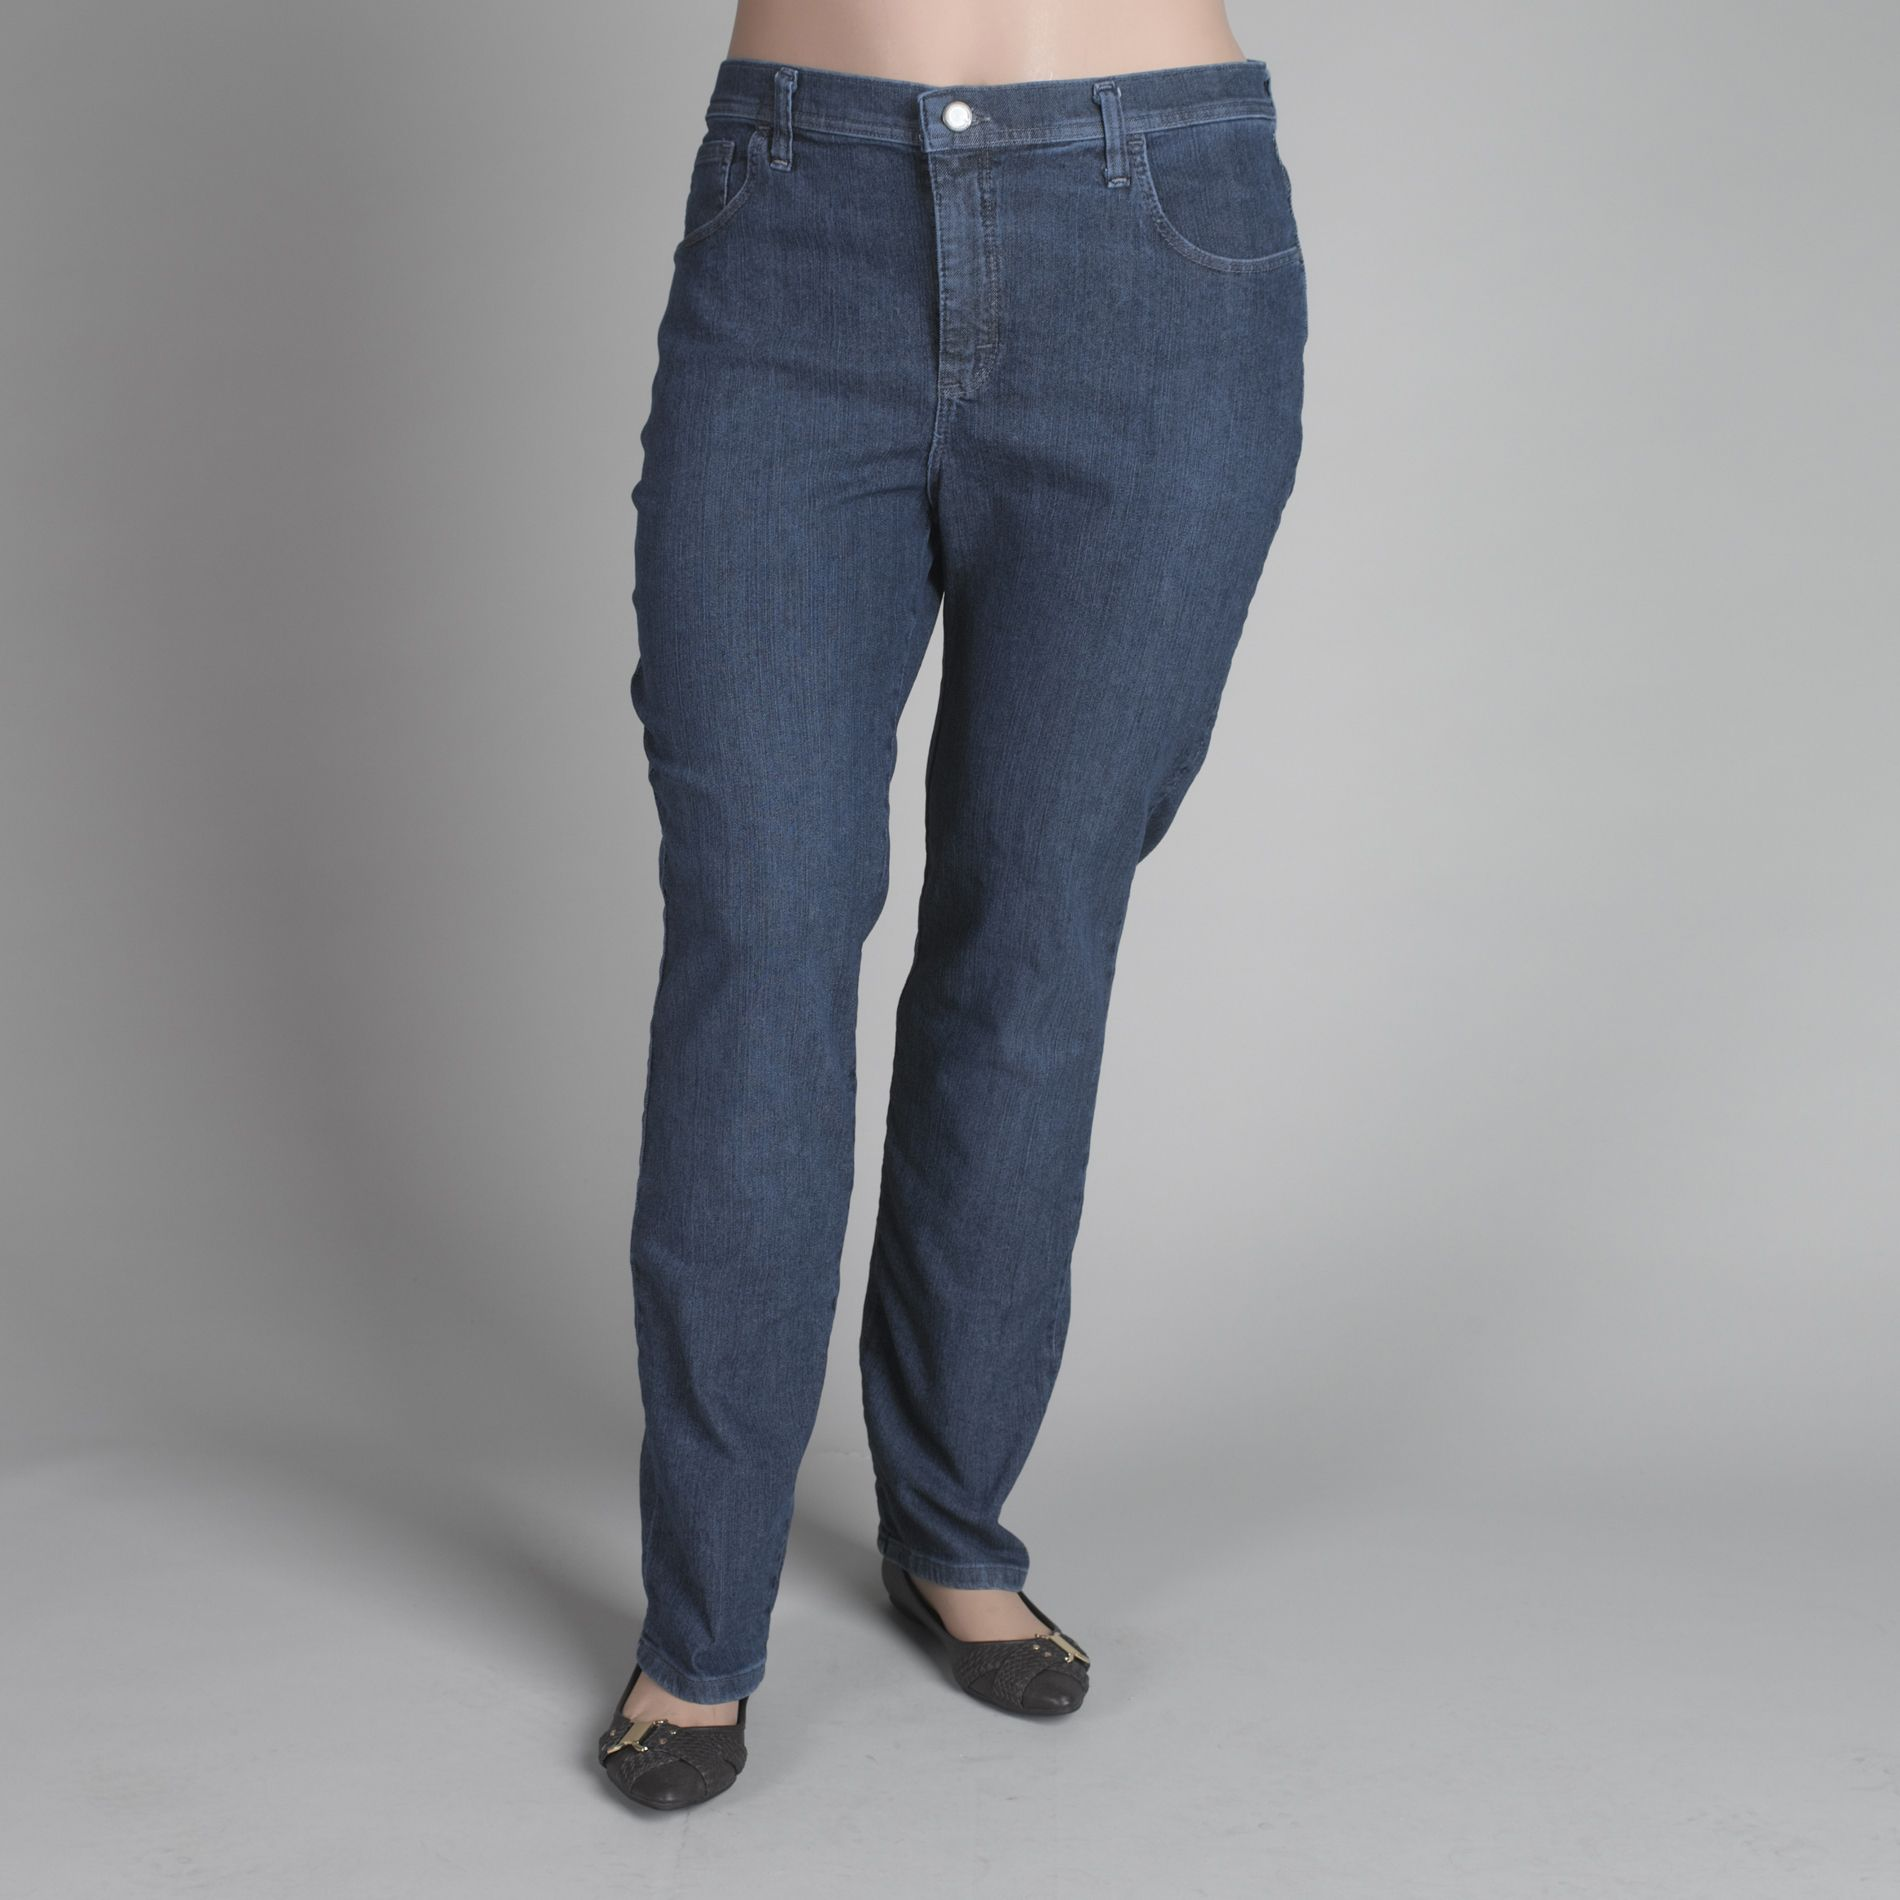 LEE Women's Plus Classic Fit Straight Leg Jeans at Sears.com